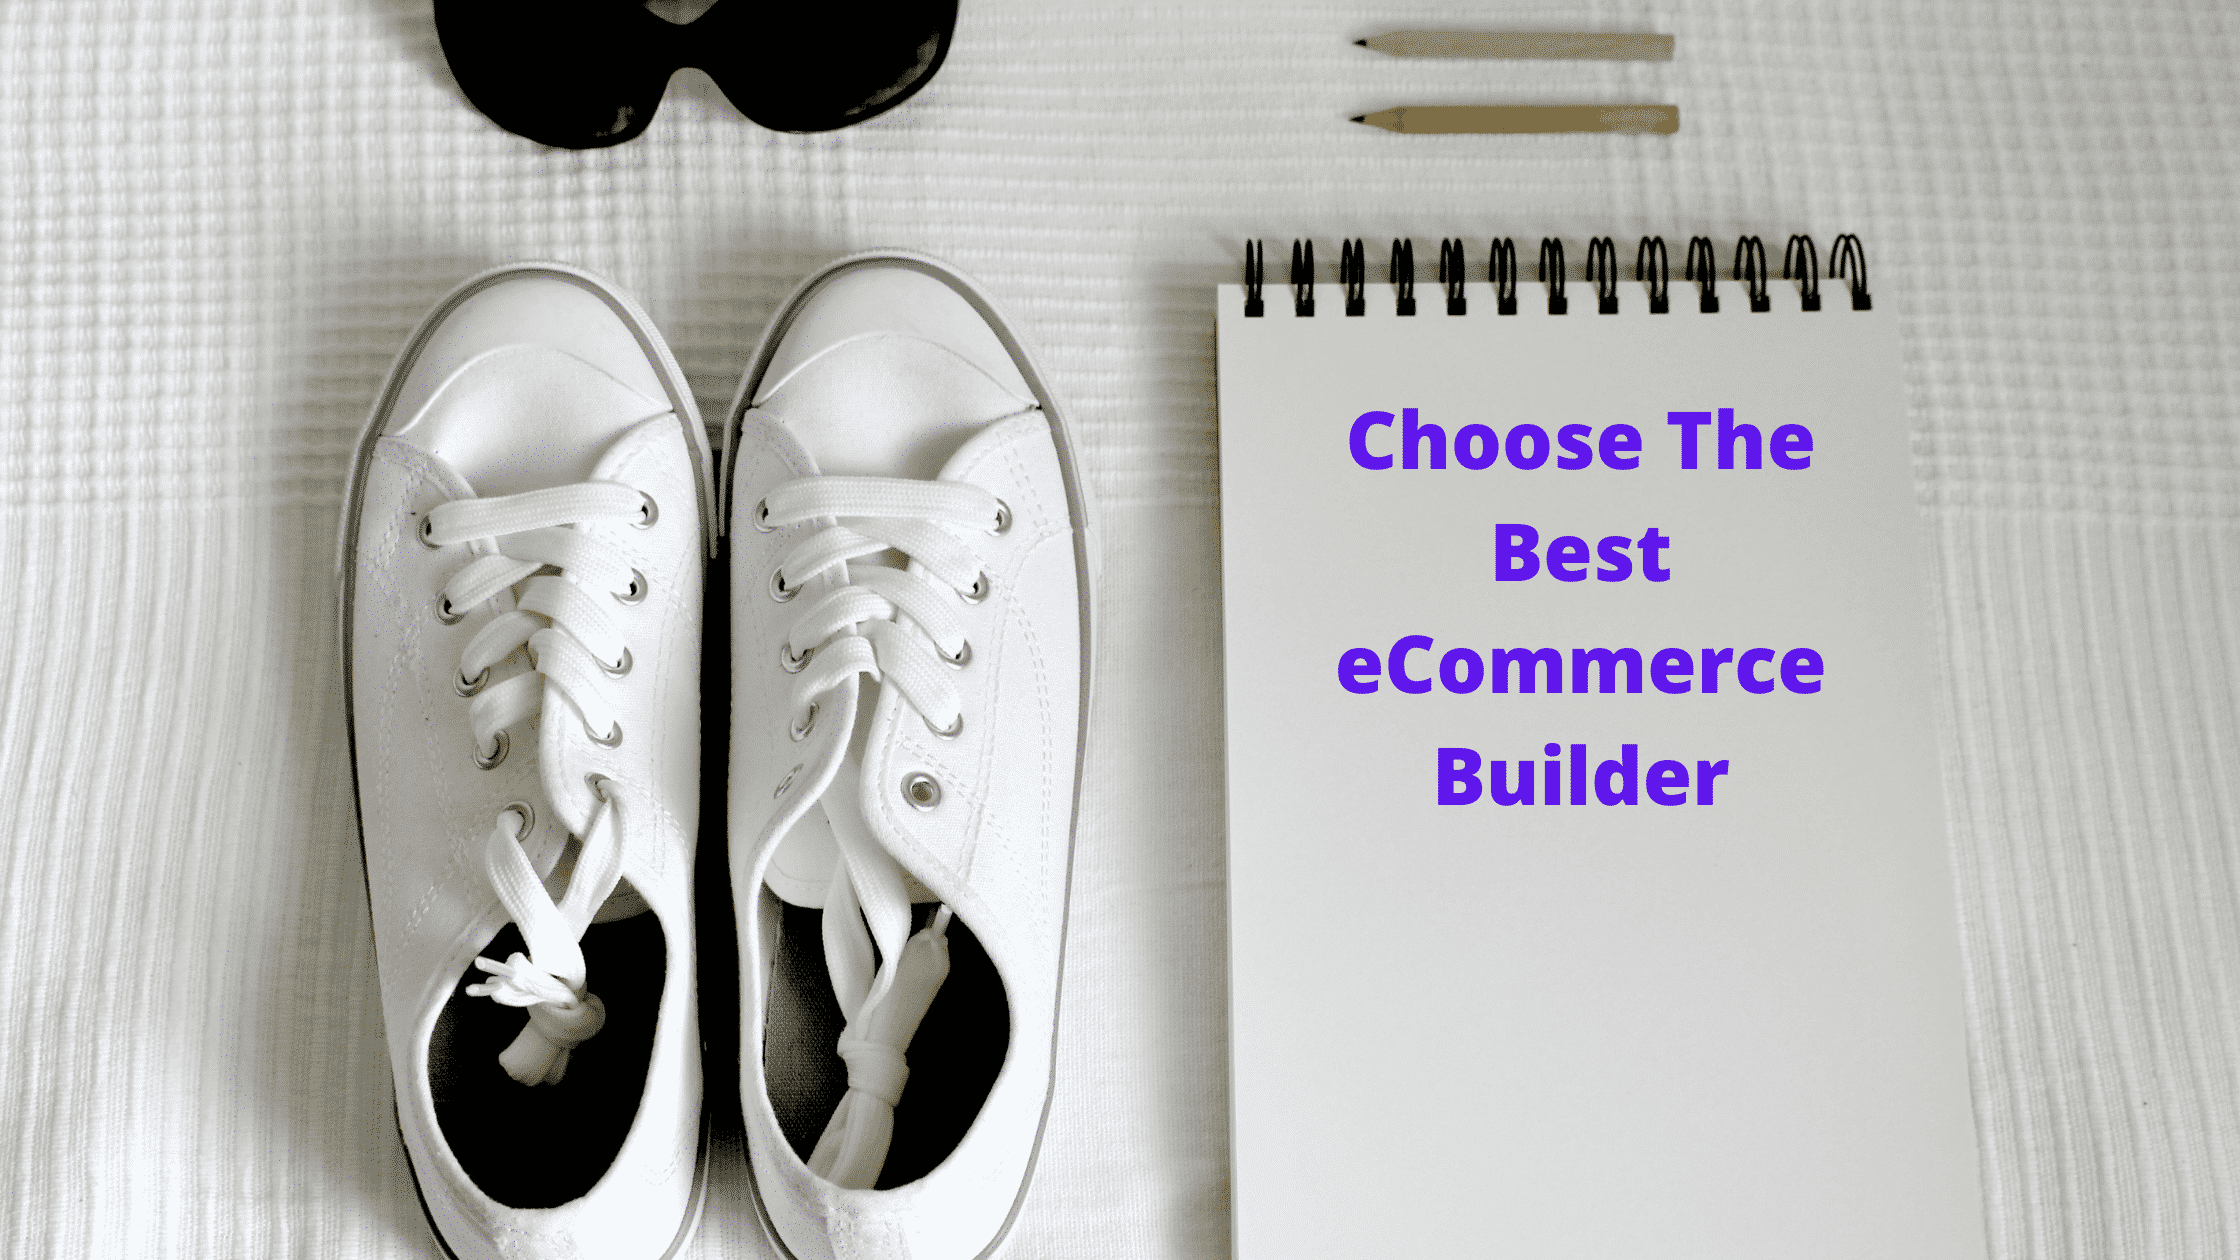 Choose The Best eCommerce Builder (2) (1)